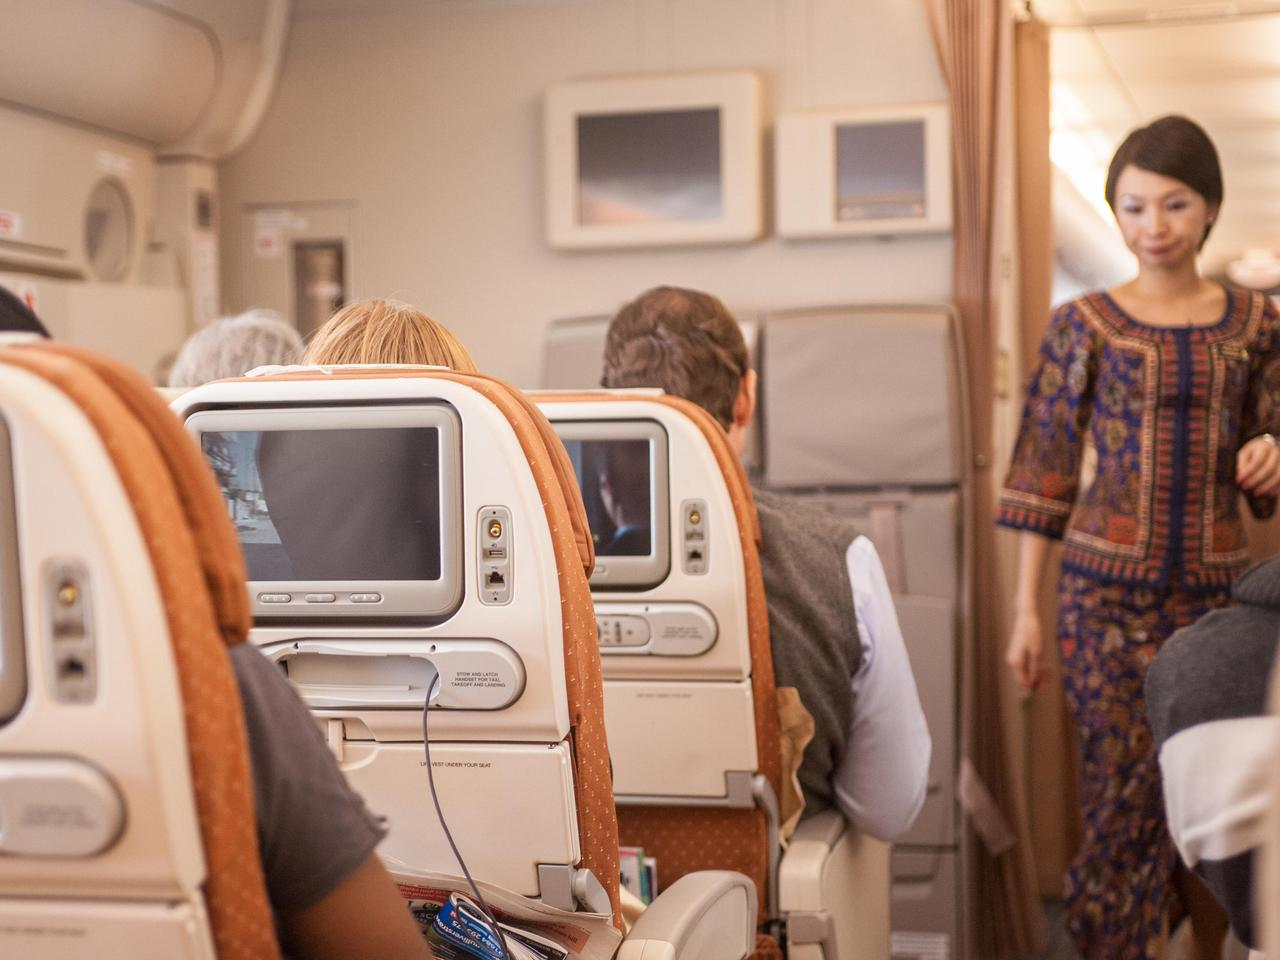 Cabin of A380 double decker Singapore Airlines Airbus at Changi Airport,Singapore leaving for London.female,woman,flight,attendant,staff,young,